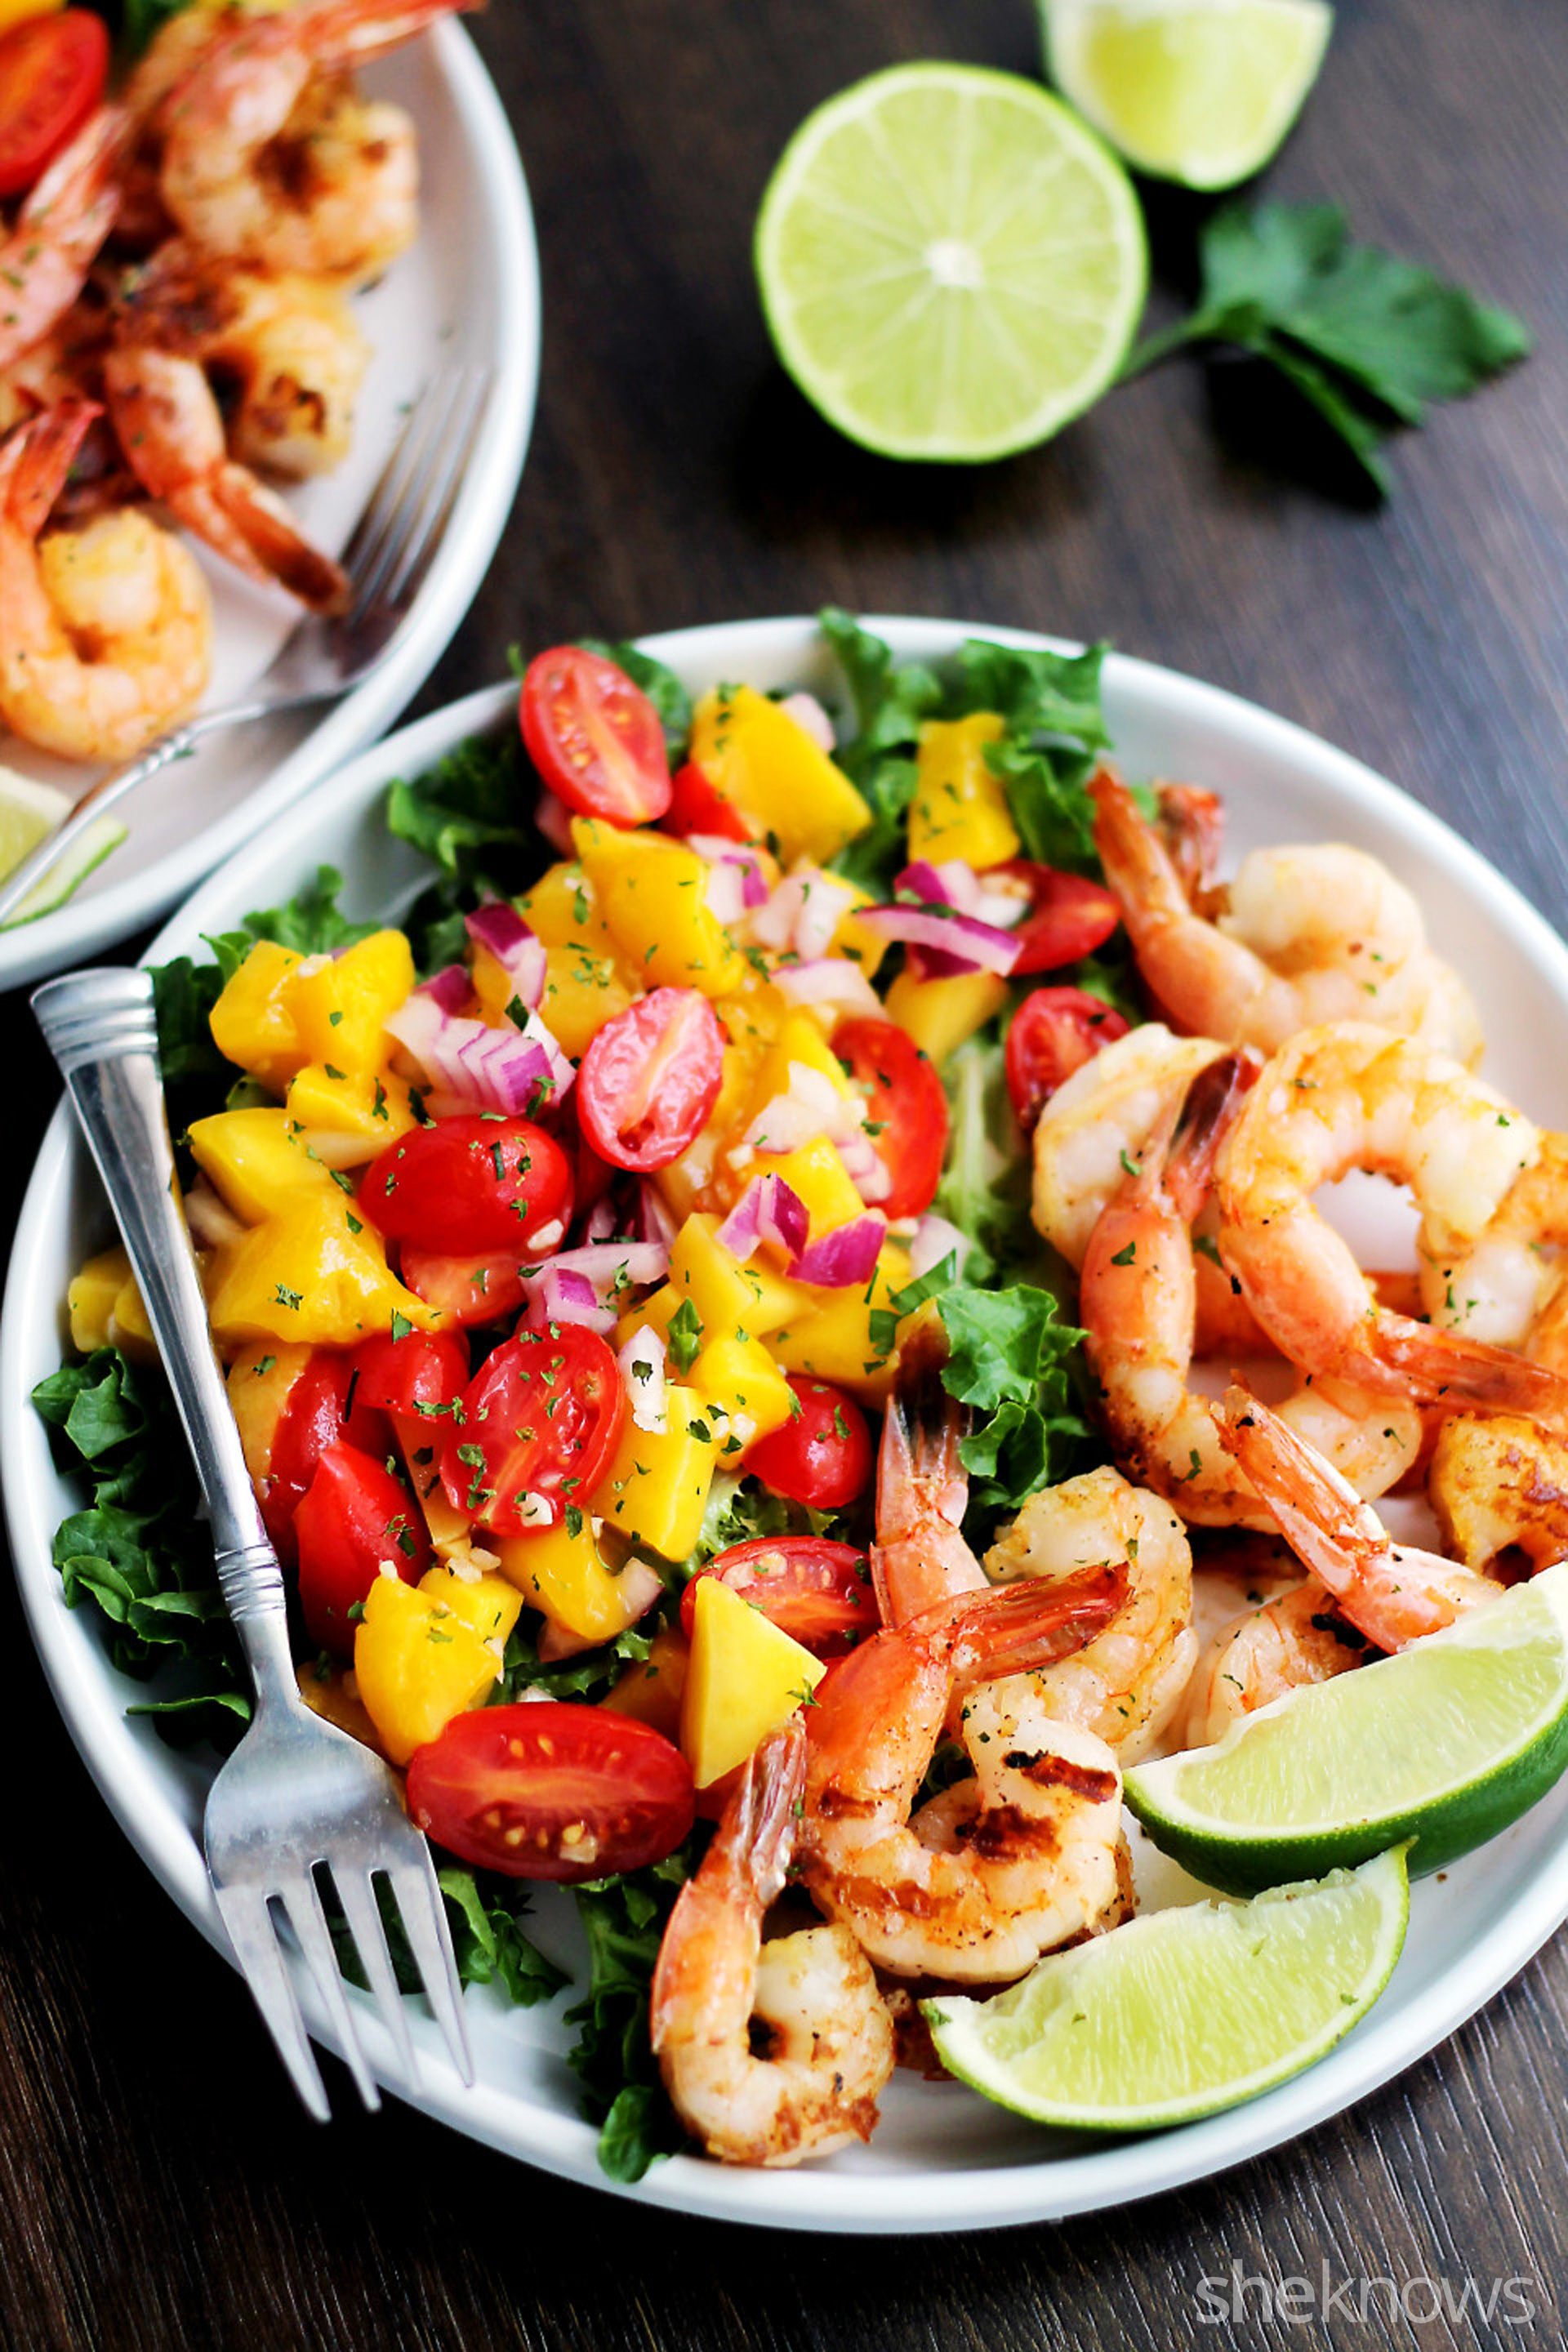 Bright fresh flavors make shrimp and mango salad a go-to summer dish